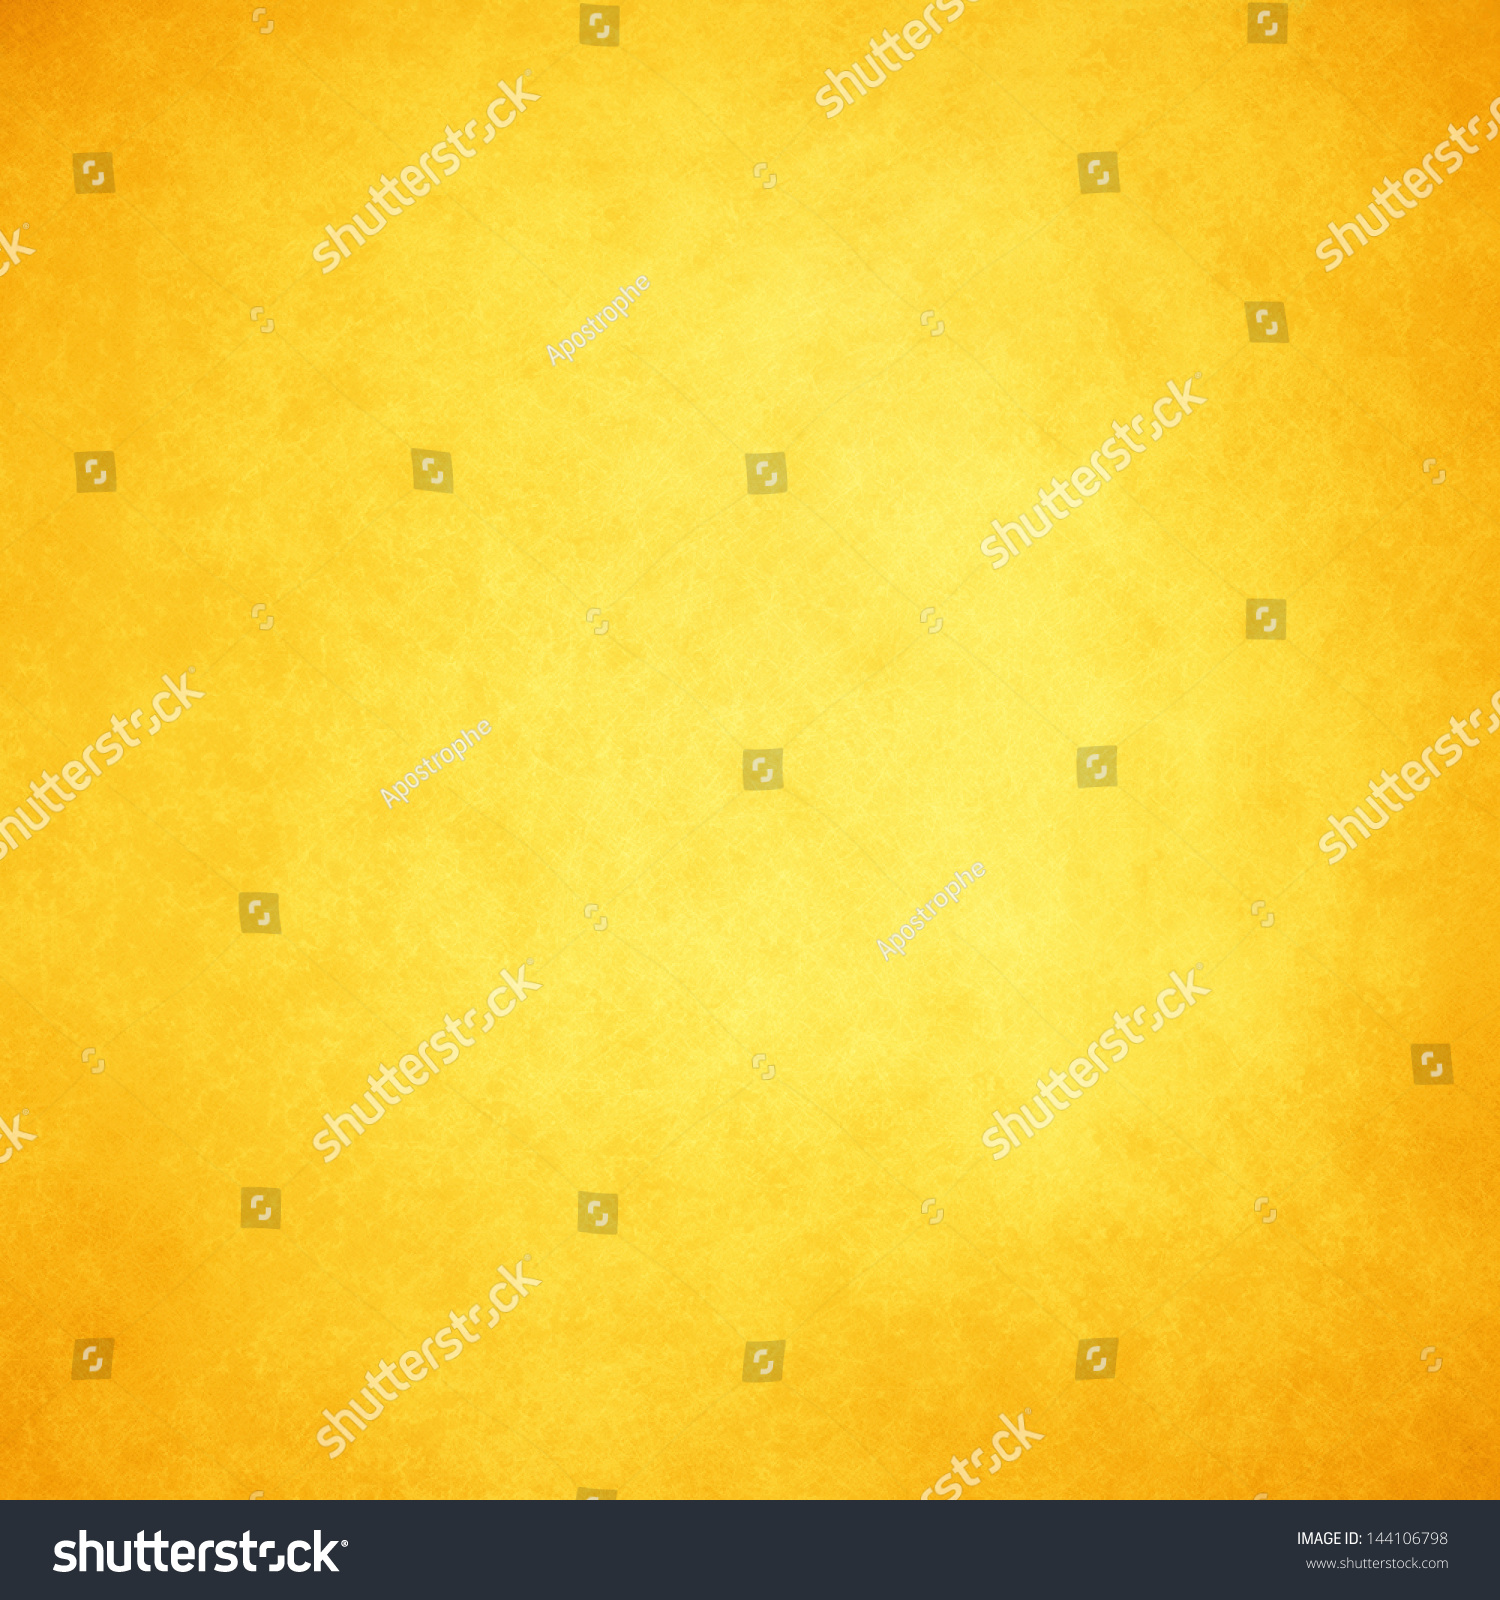 Solid Light Yellow Background